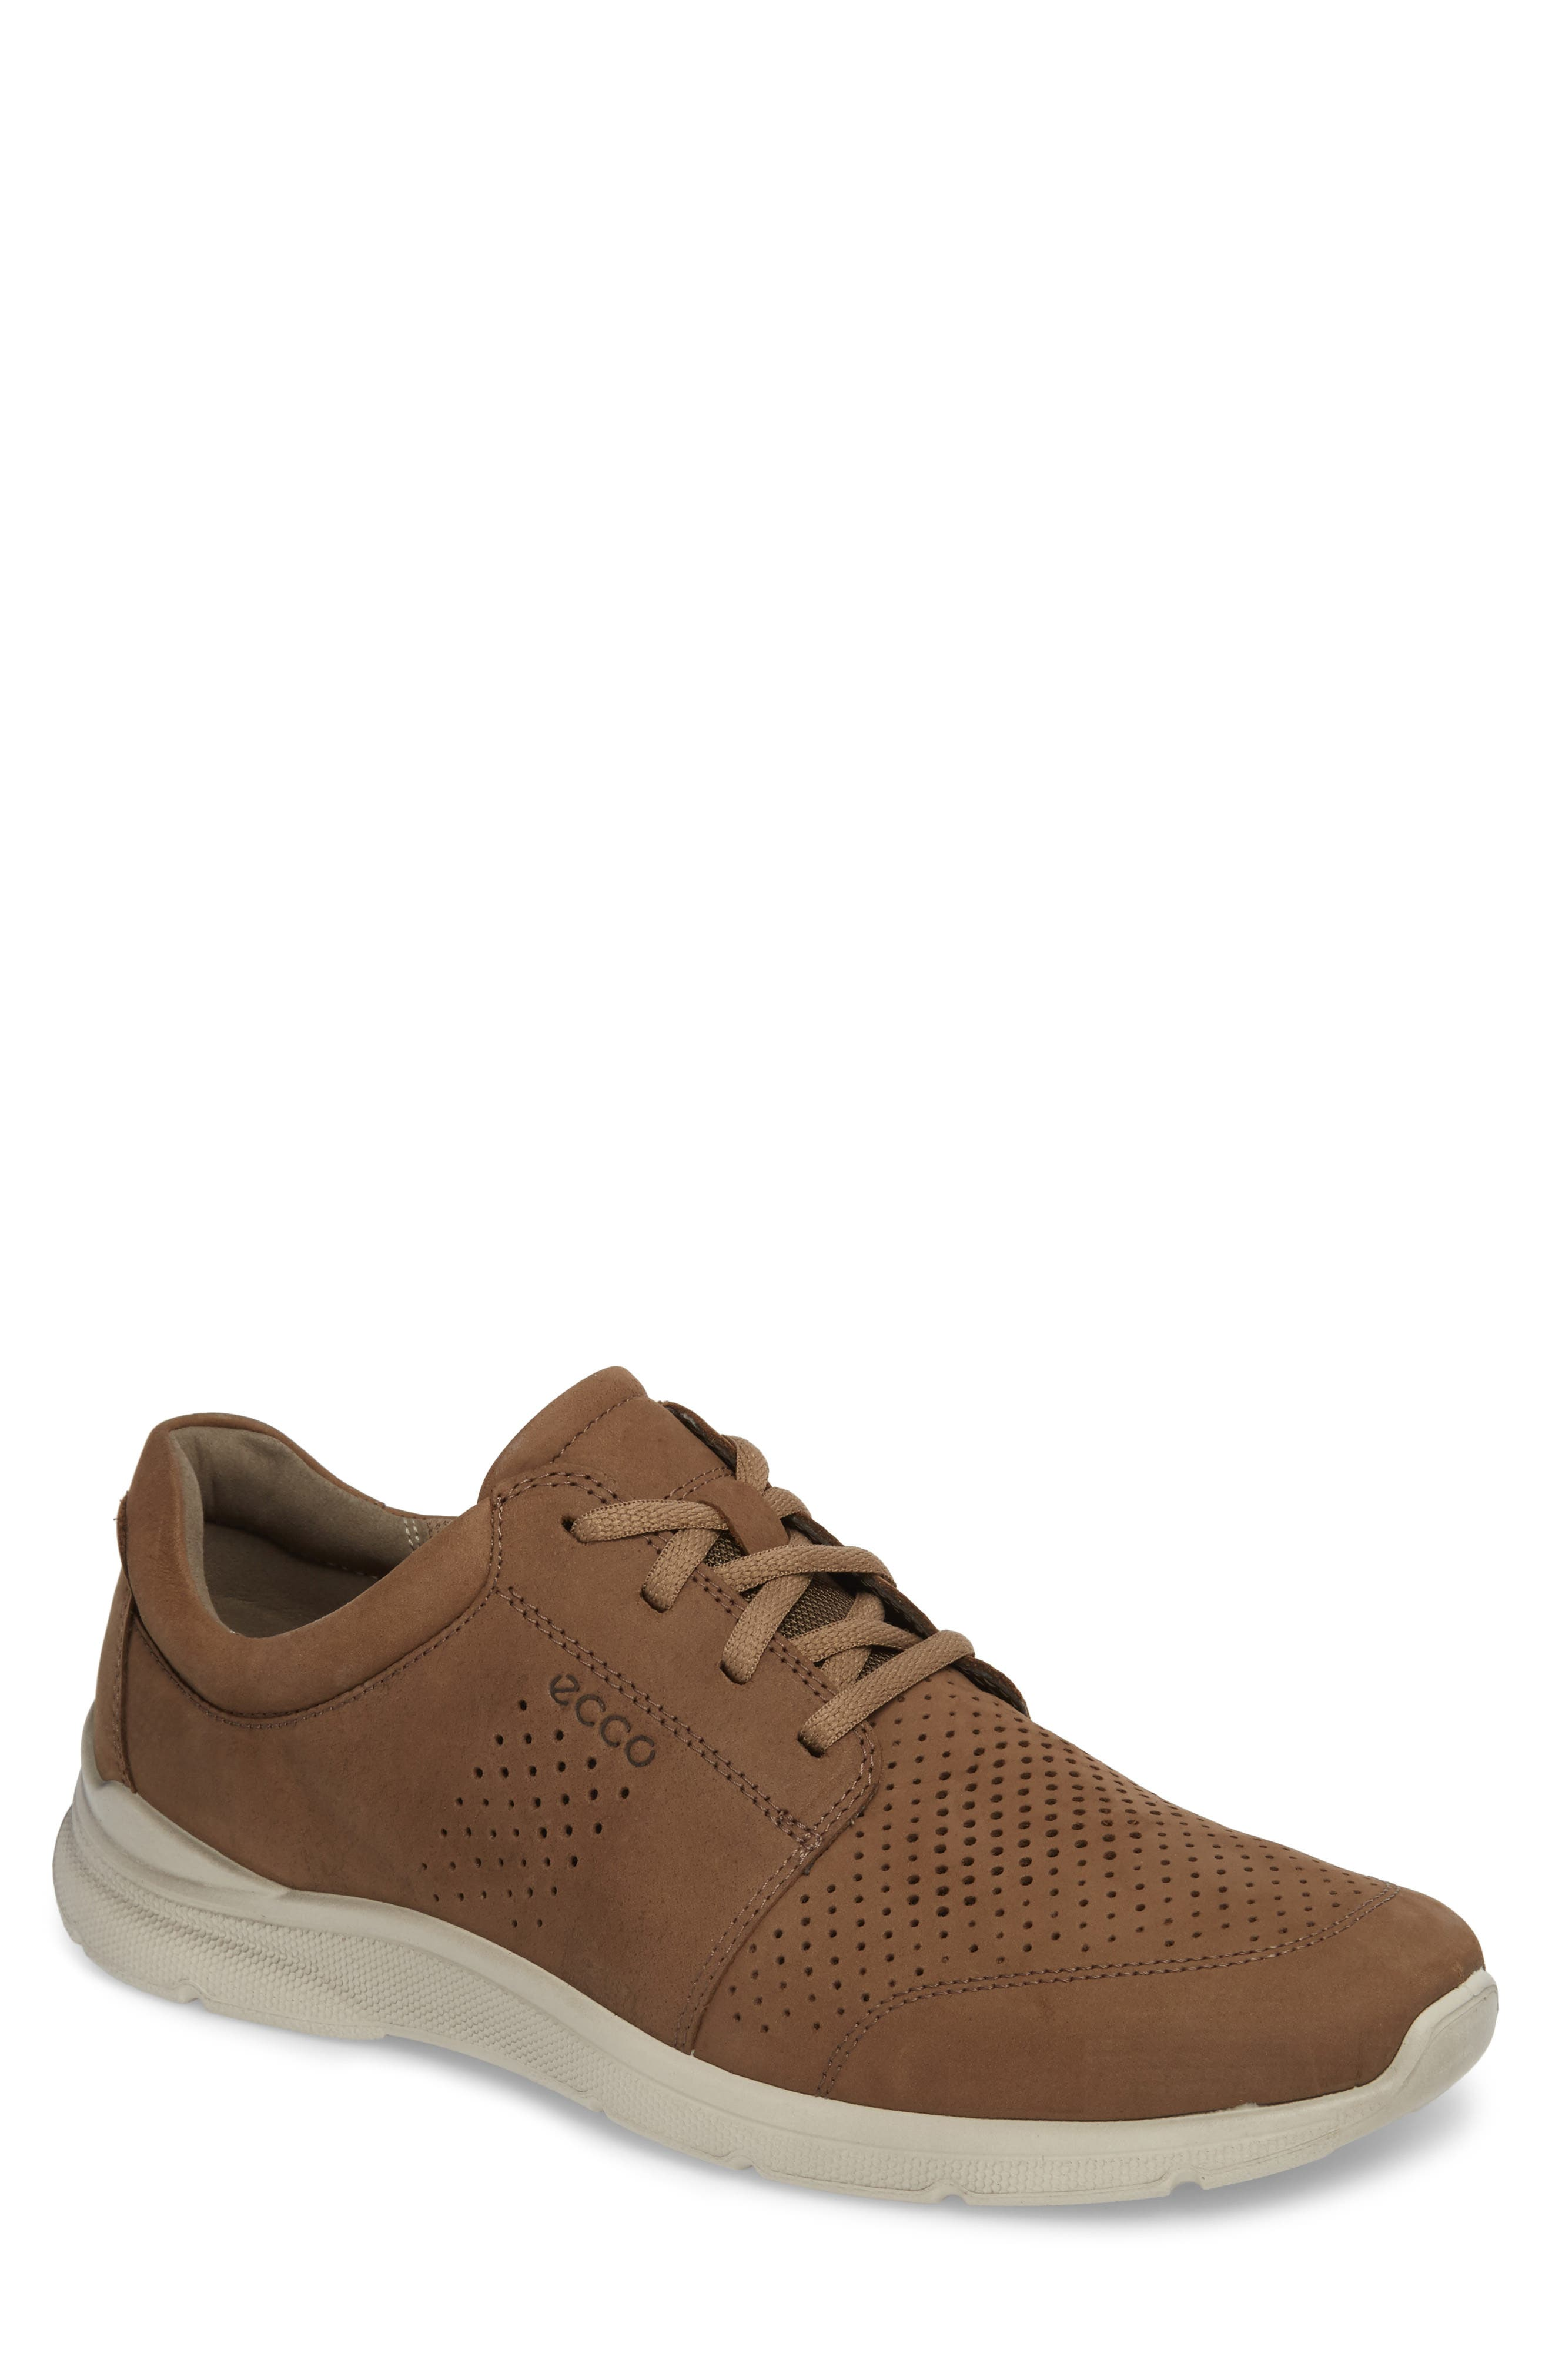 Irving Lace-Up Sneaker,                             Main thumbnail 1, color,                             Birch Leather